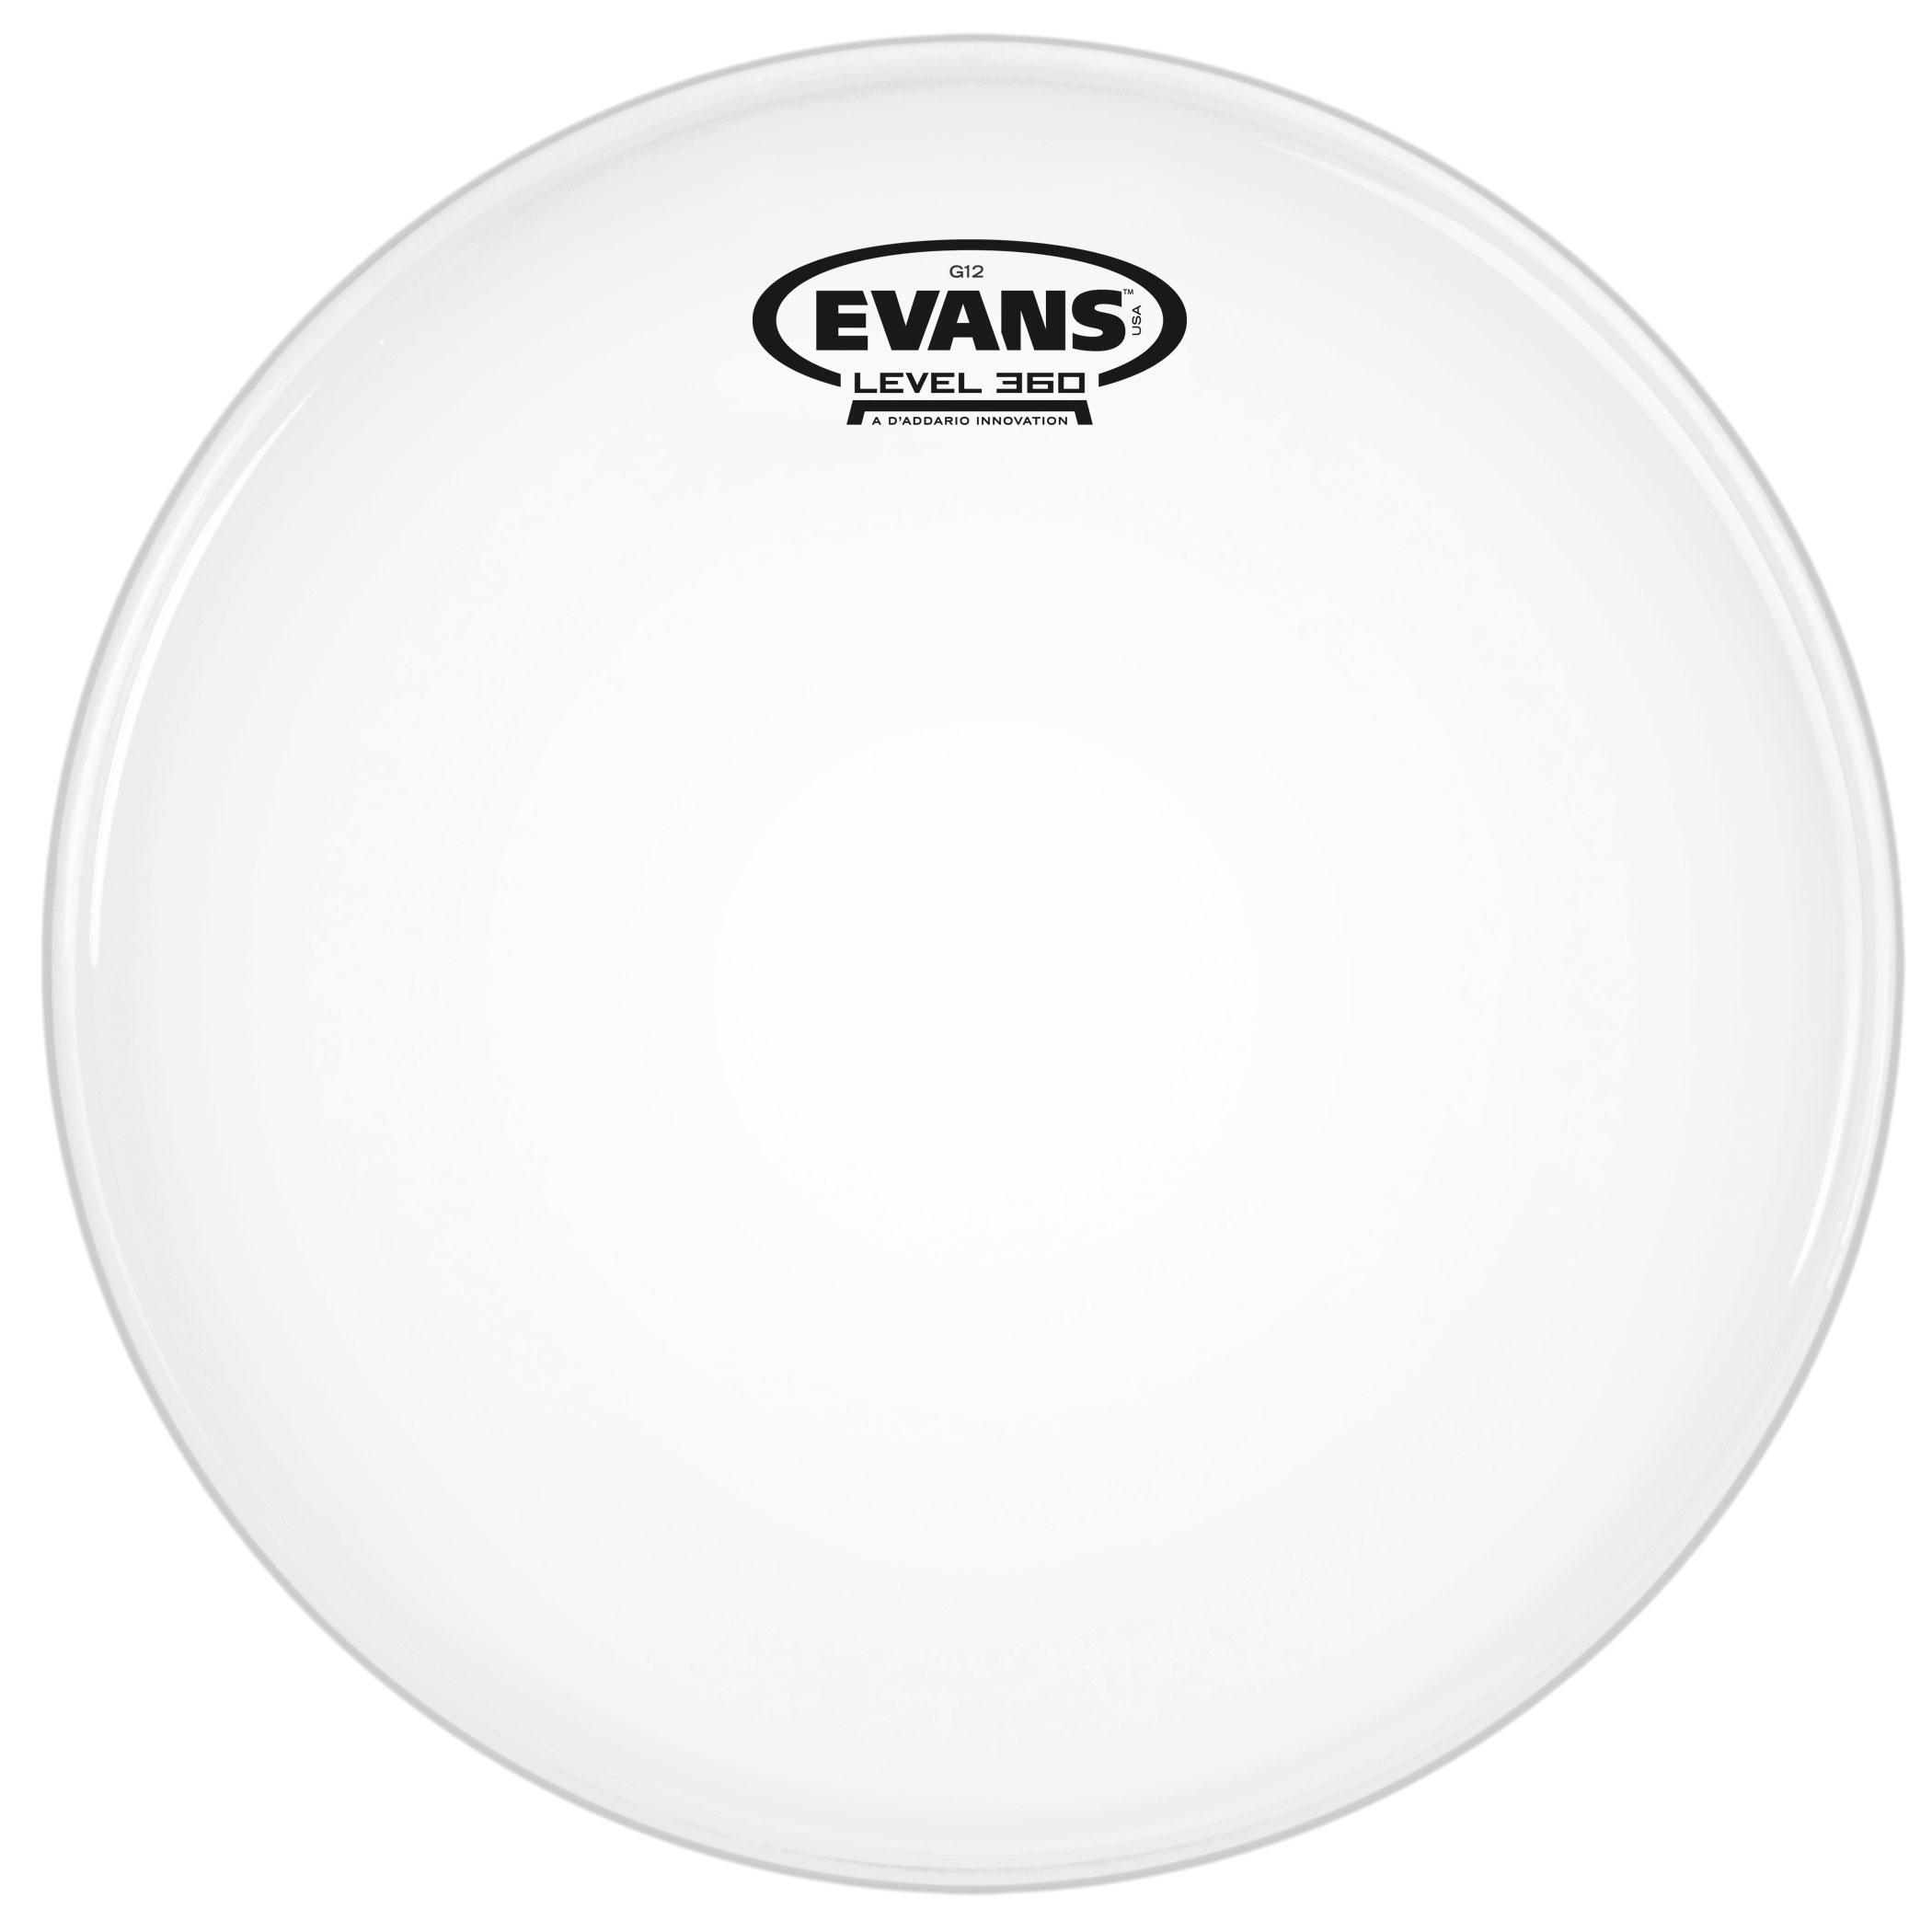 "Evans 10"" G12 Coated Head"